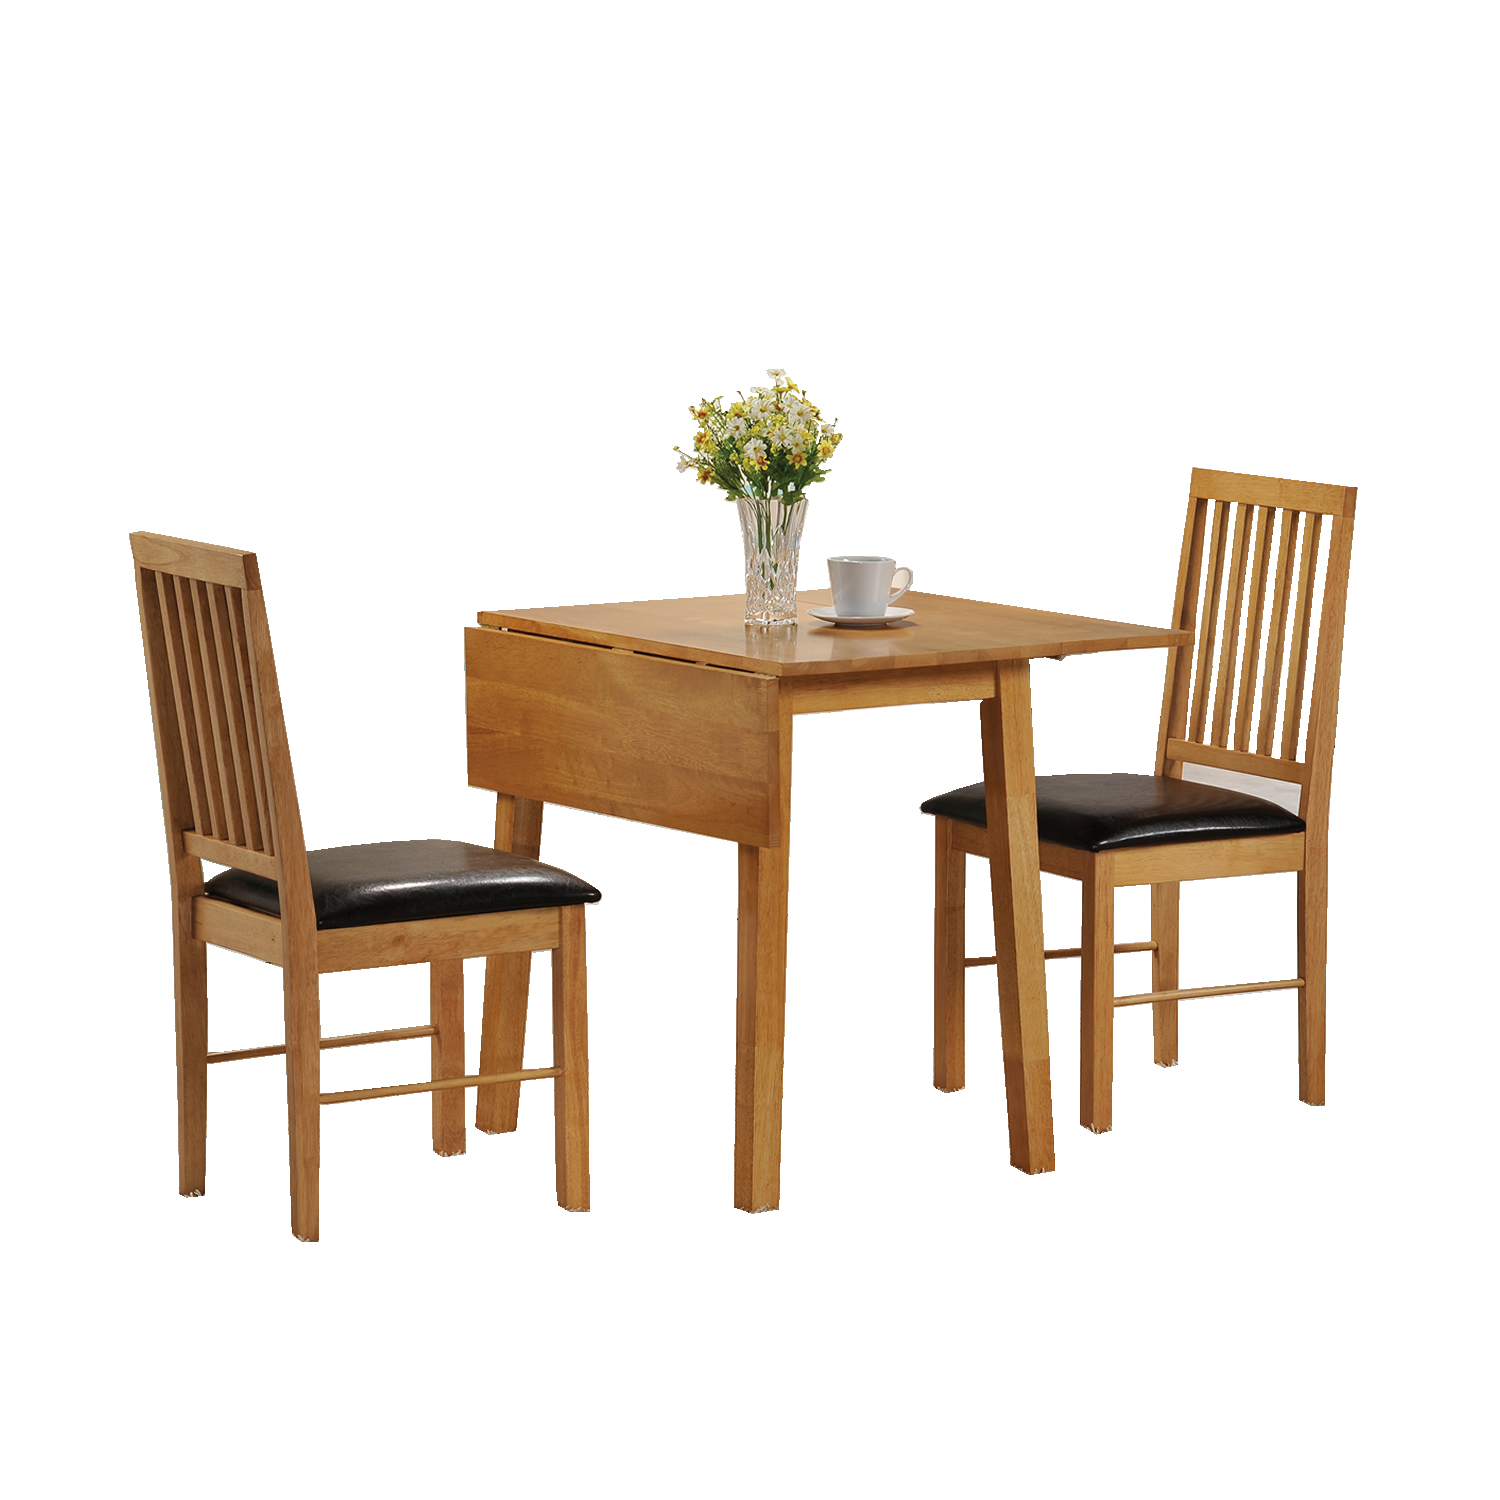 Drop leaf tables for small spaces homesfeed for Big dining table in small space